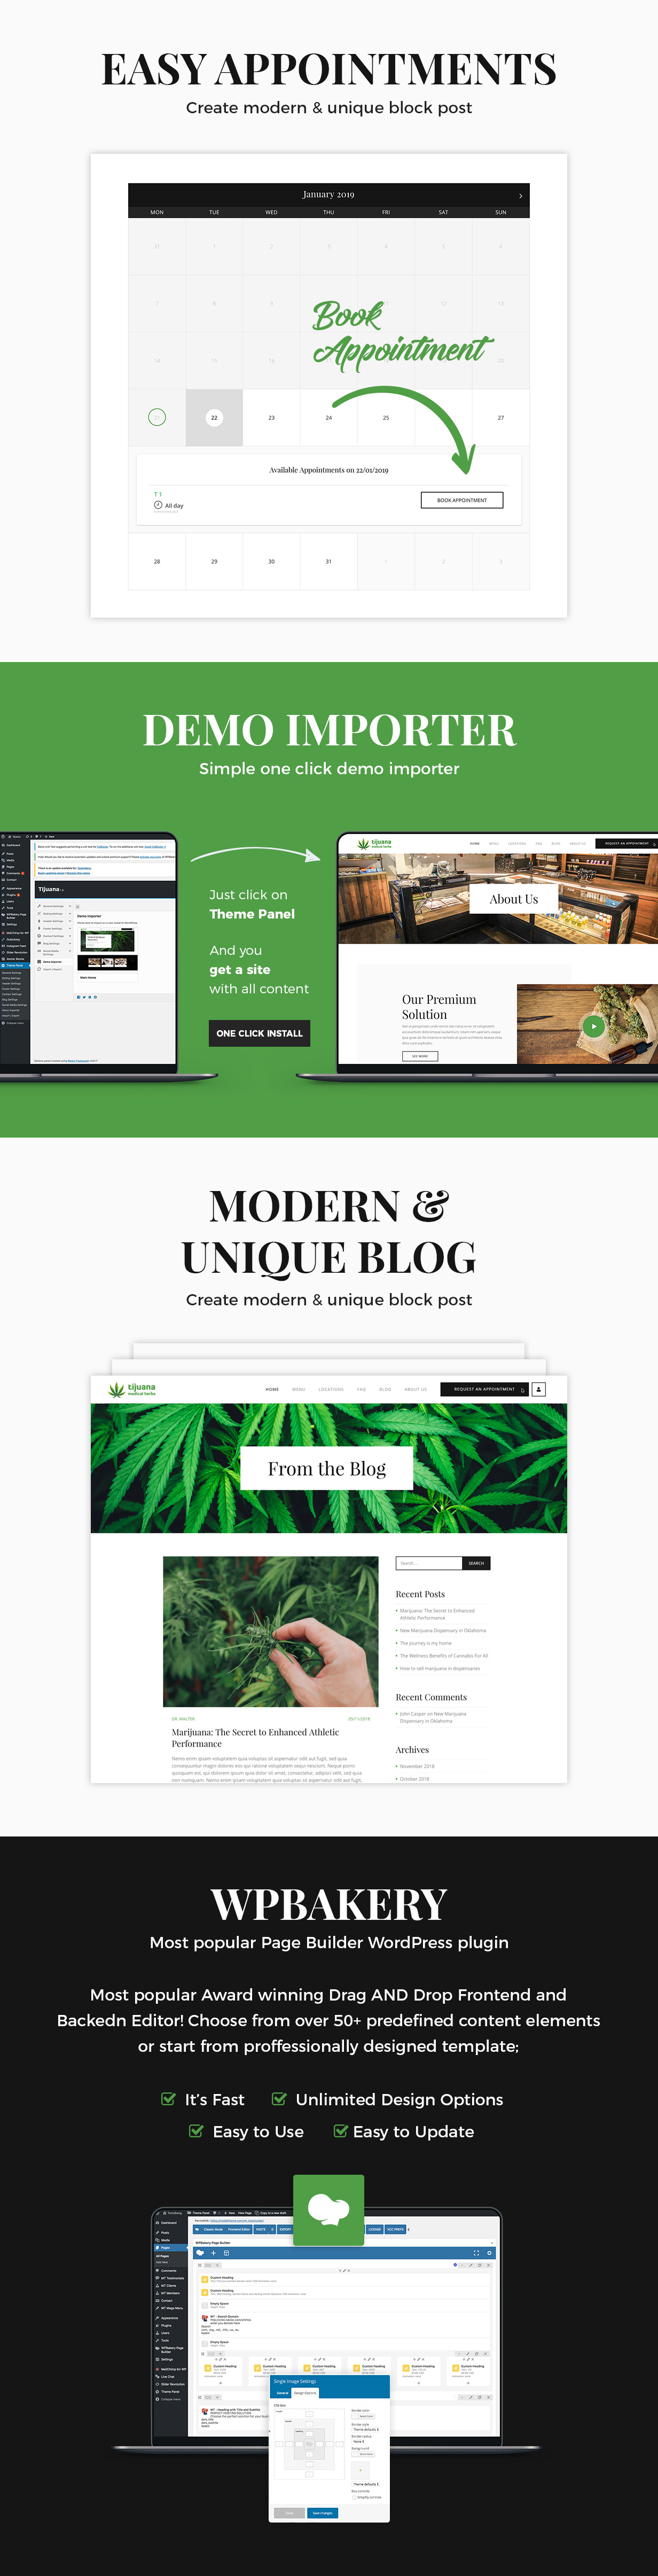 Tijuana - Marijuana Dispensary & Medical WordPress Theme - 6